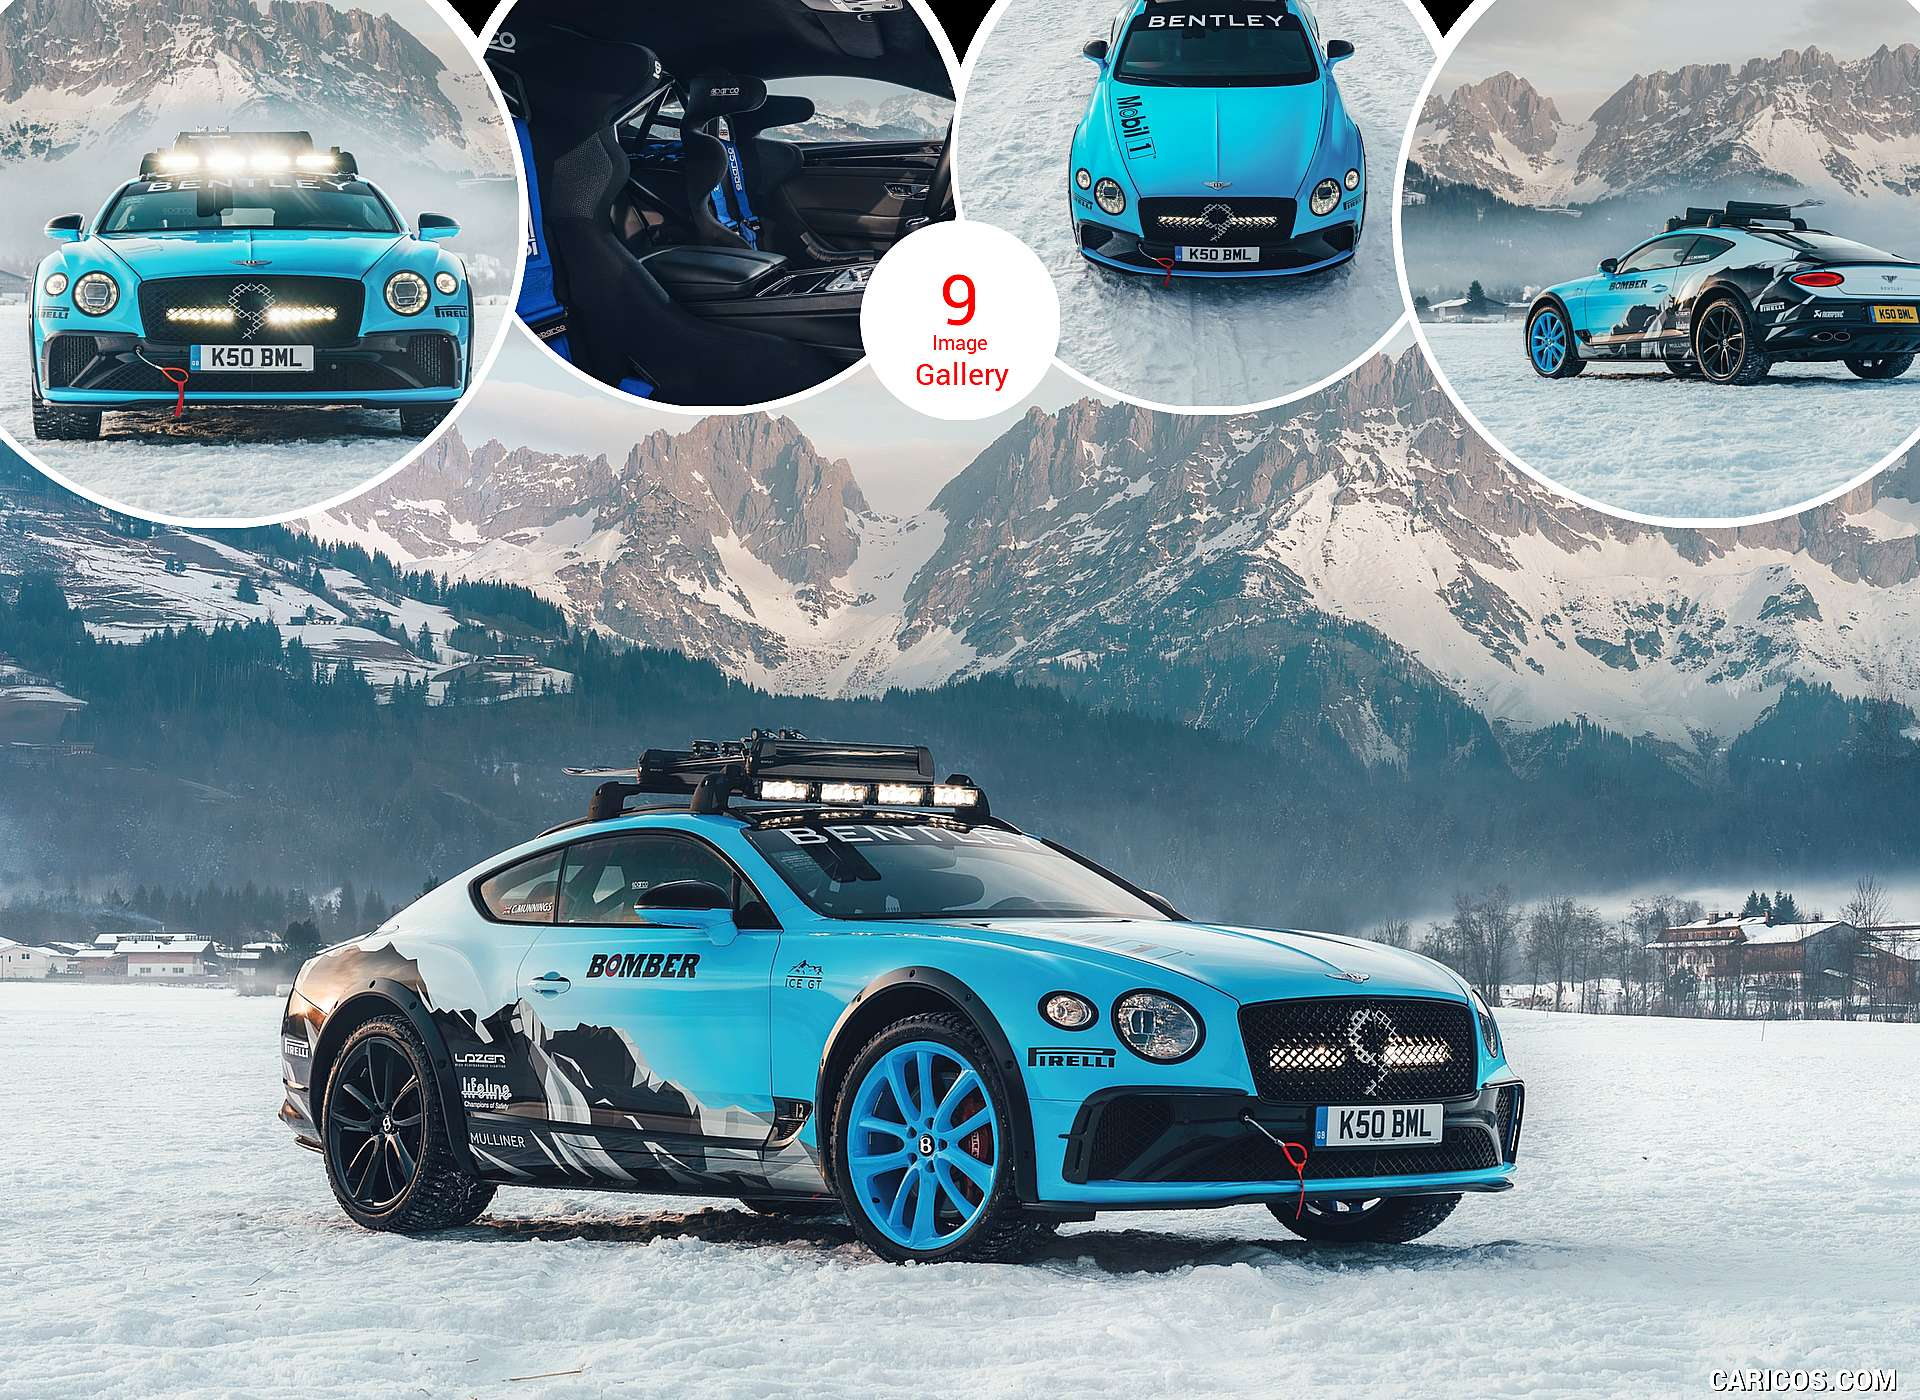 2020 Bentley Continental GT GP Ice Race